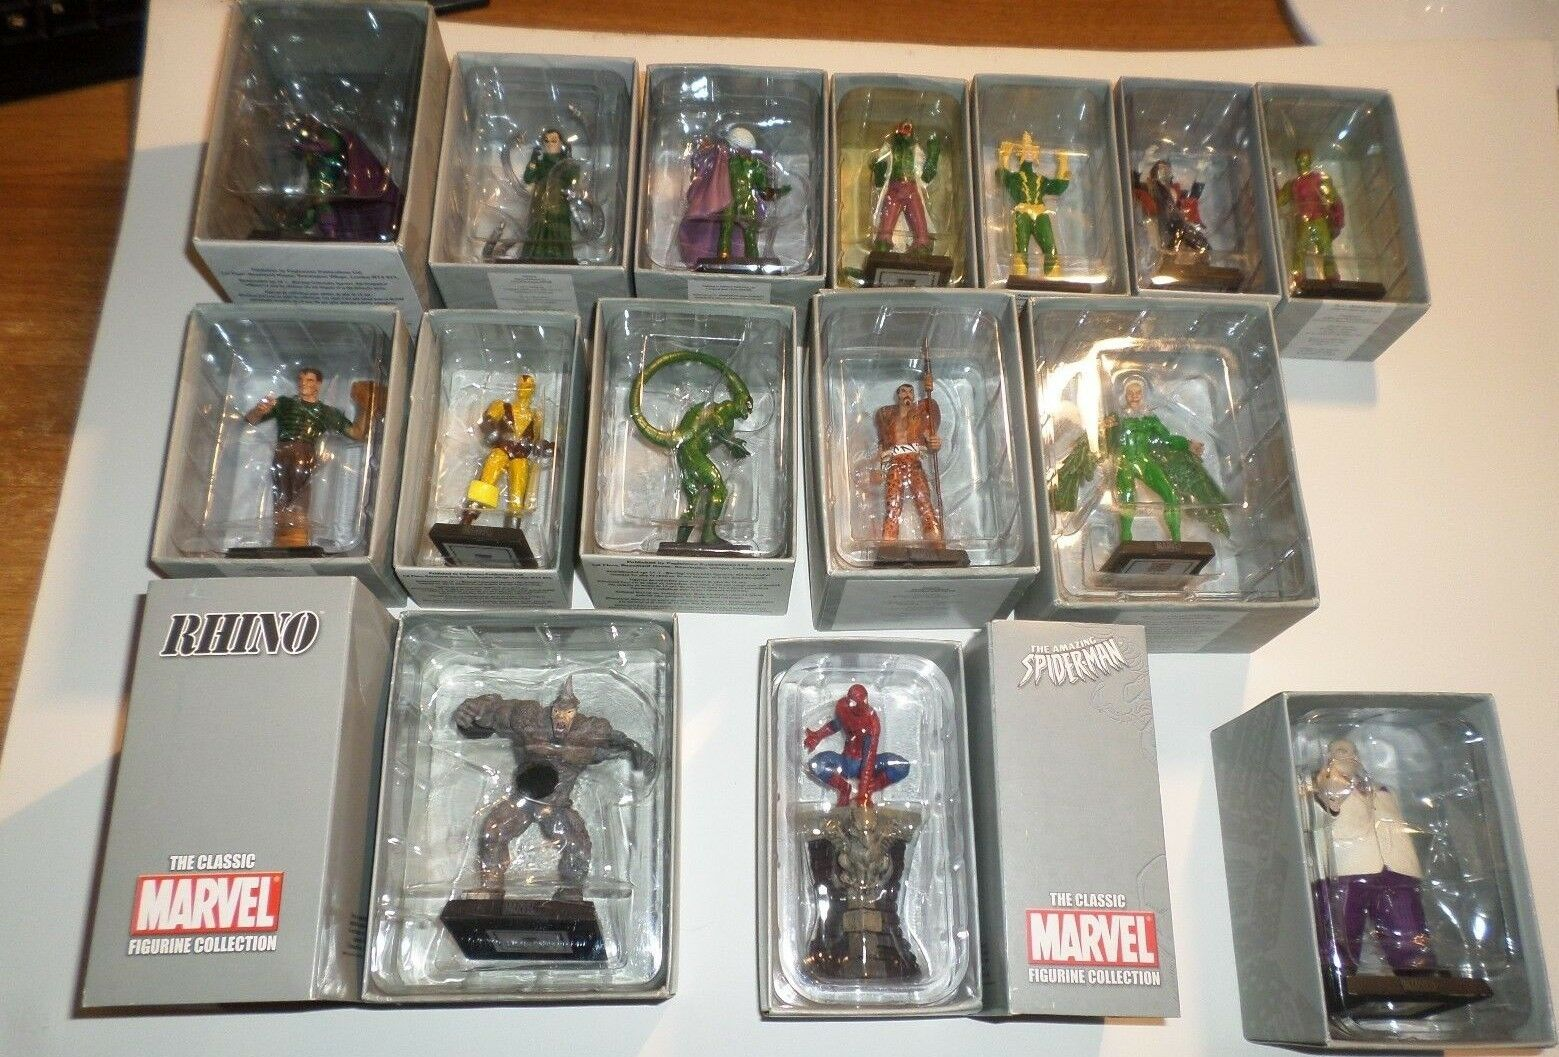 THE CLASSIC MARVEL FIGURINE COLLECTION 15 action figure spide-rman eaglemoss